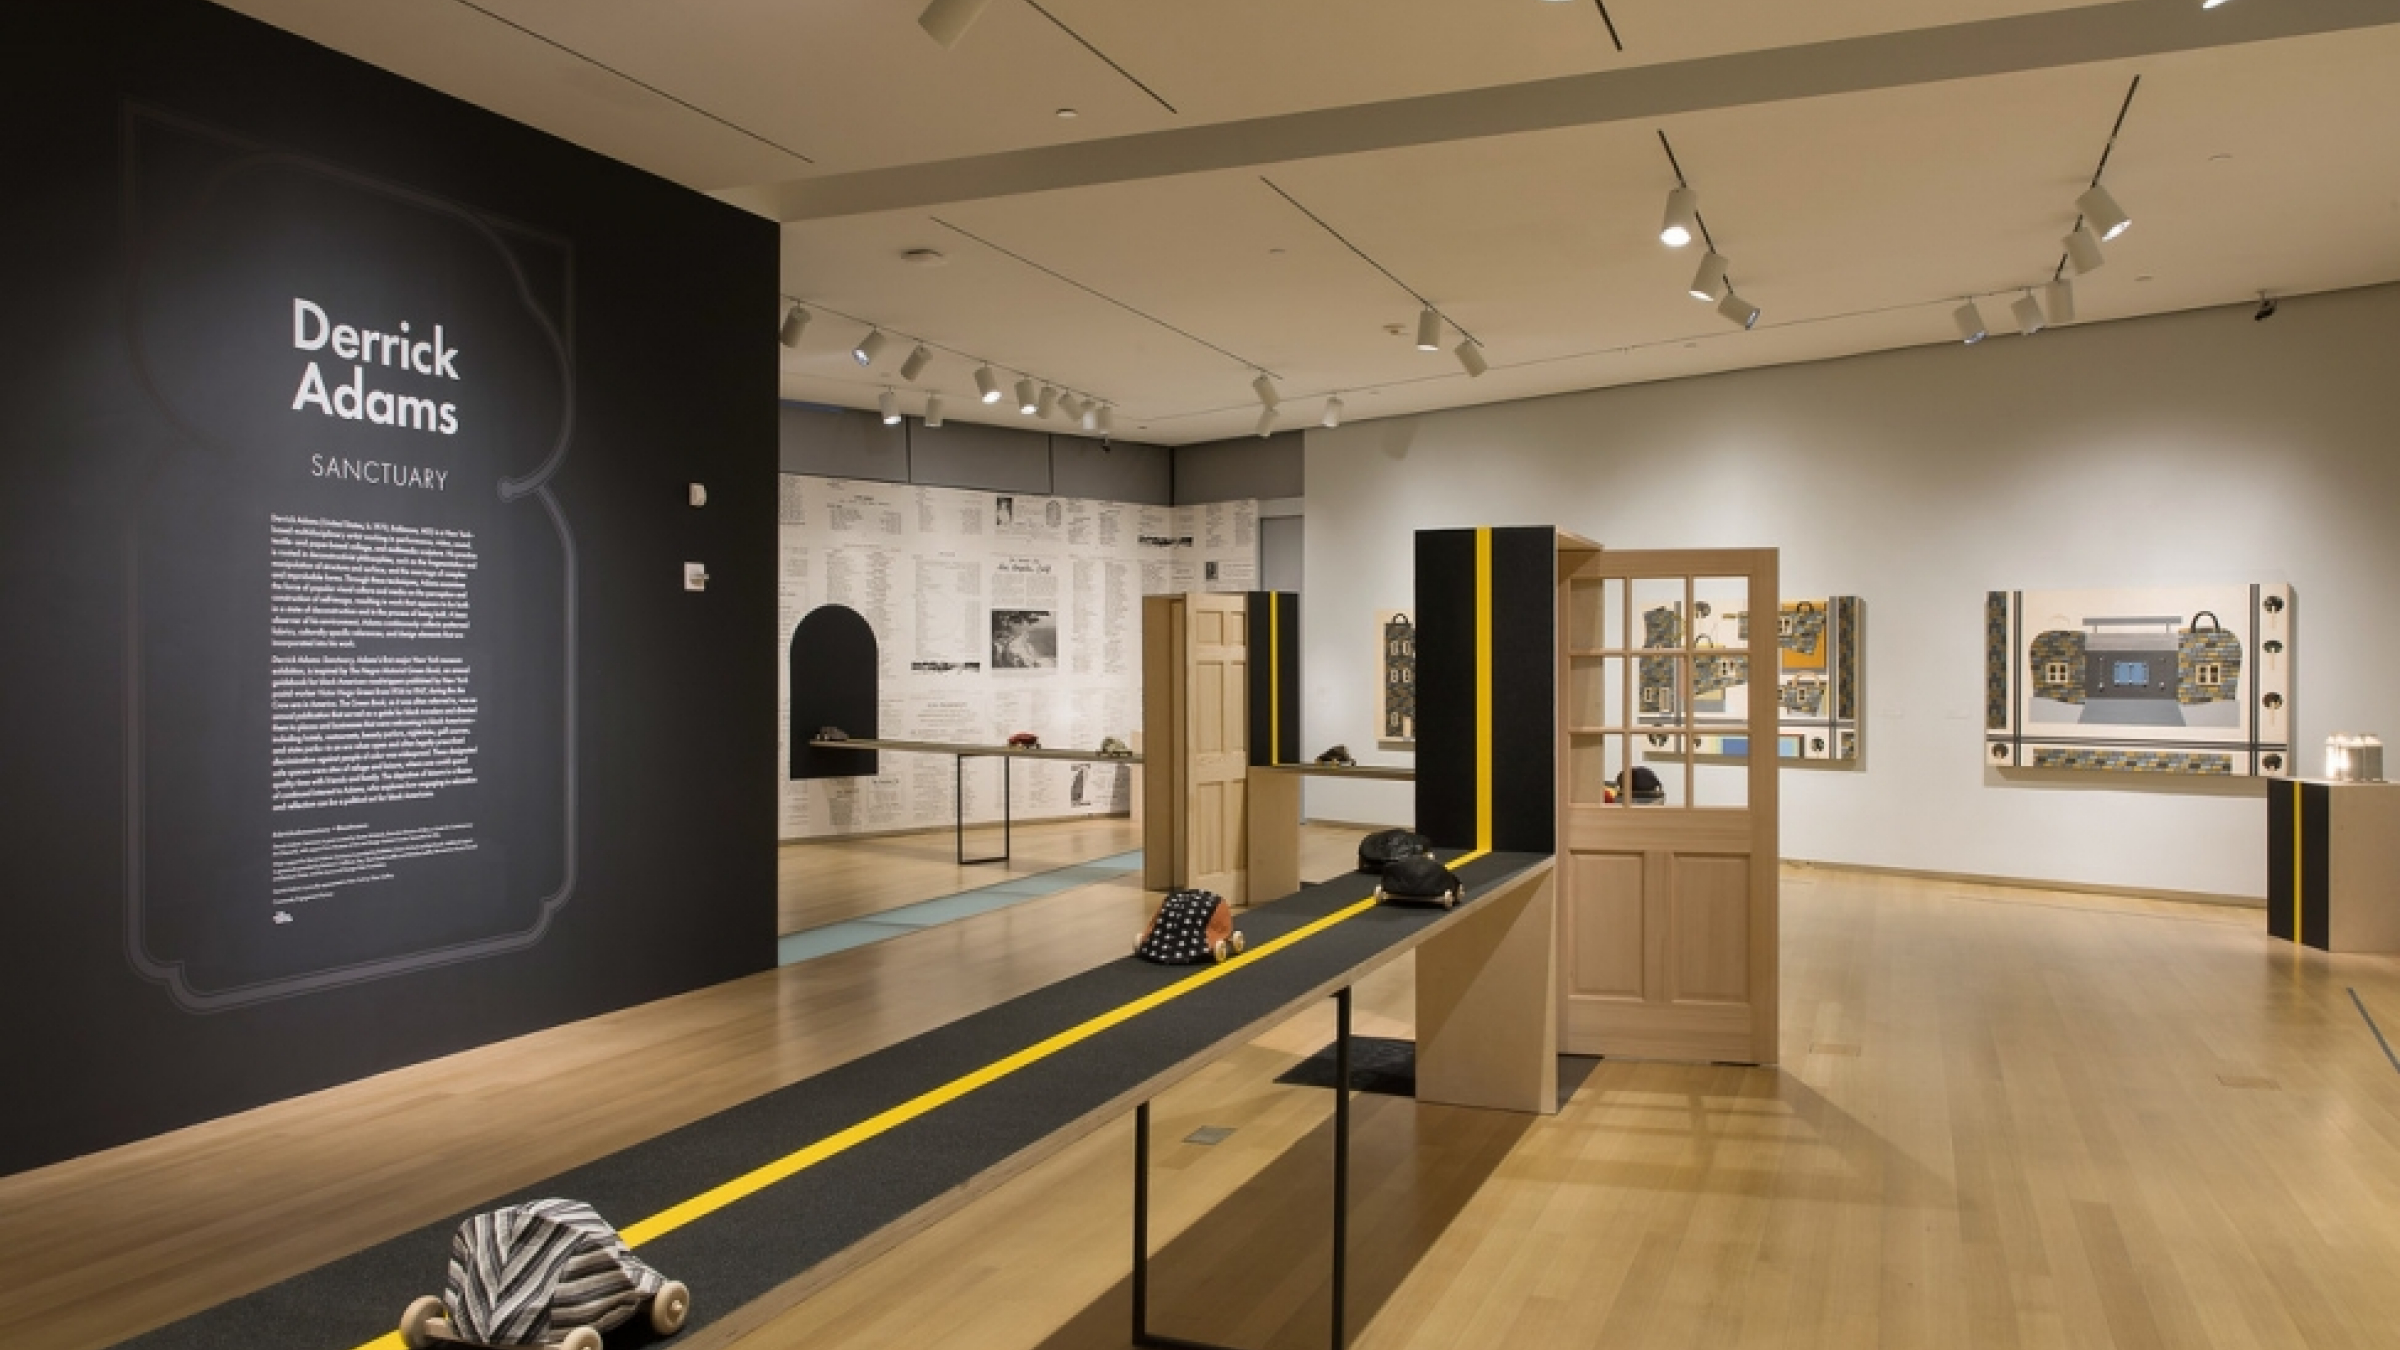 <p><span>Photo by Jenna Bascom. Courtesy Museum of Arts and Design.</span></p>